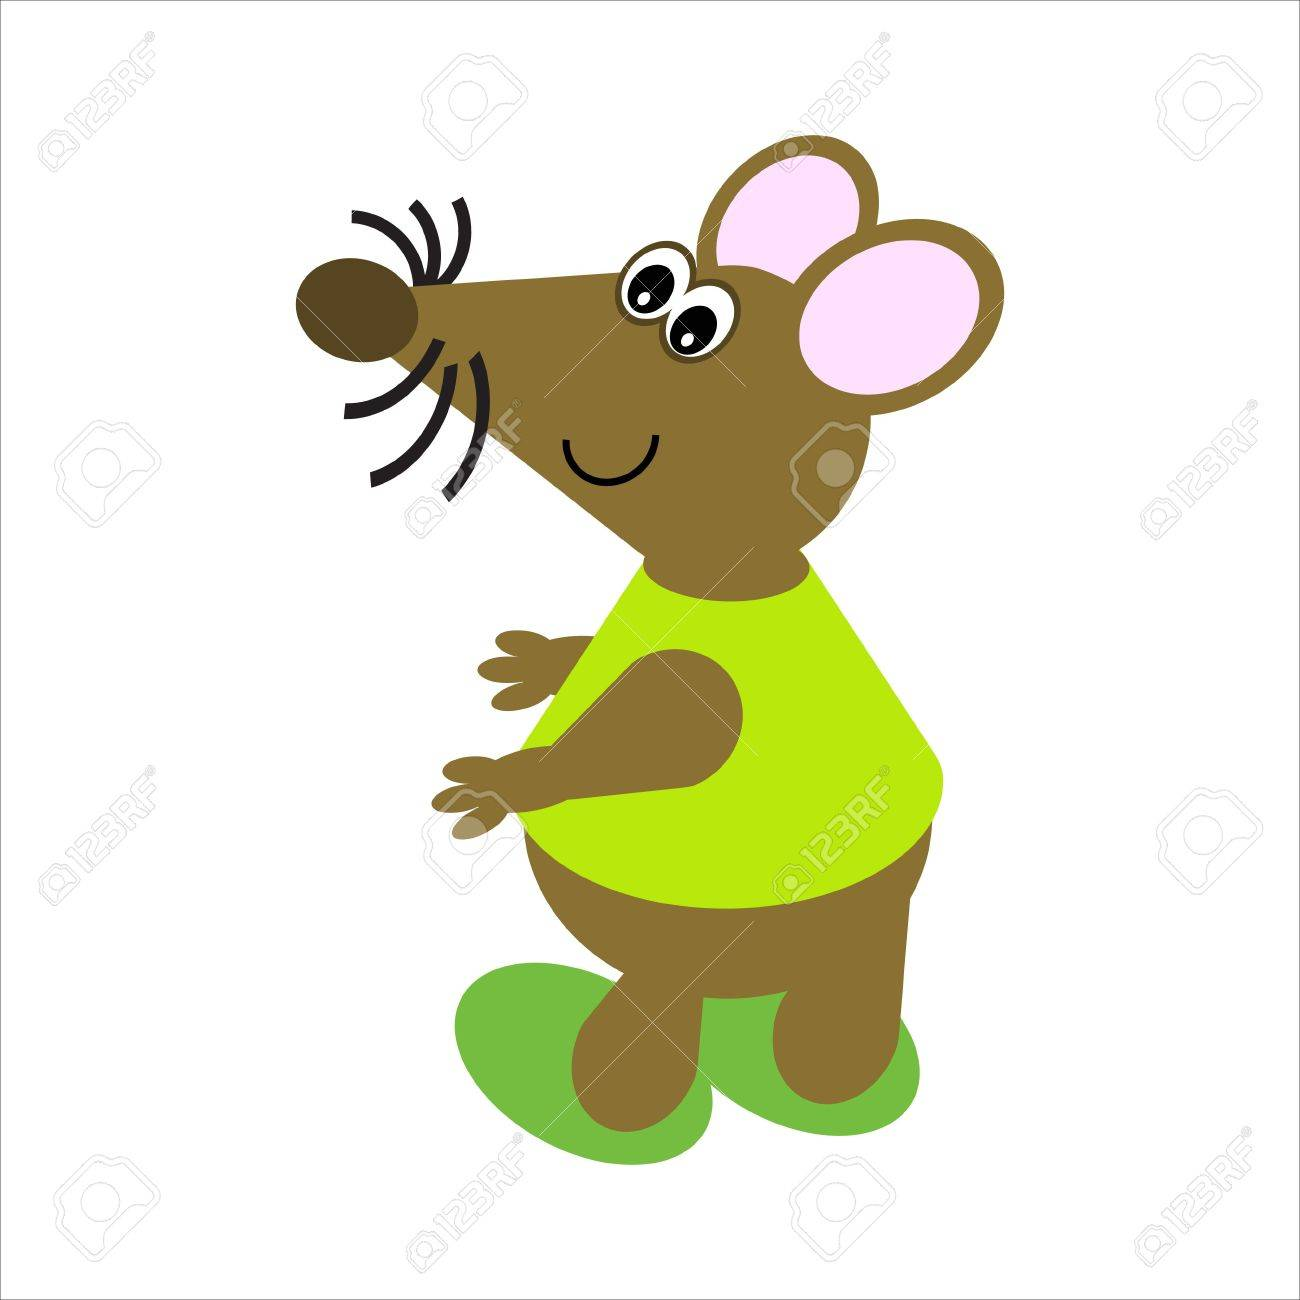 Cartoon of a happy, dancing mouse Stock Photo - 4998193